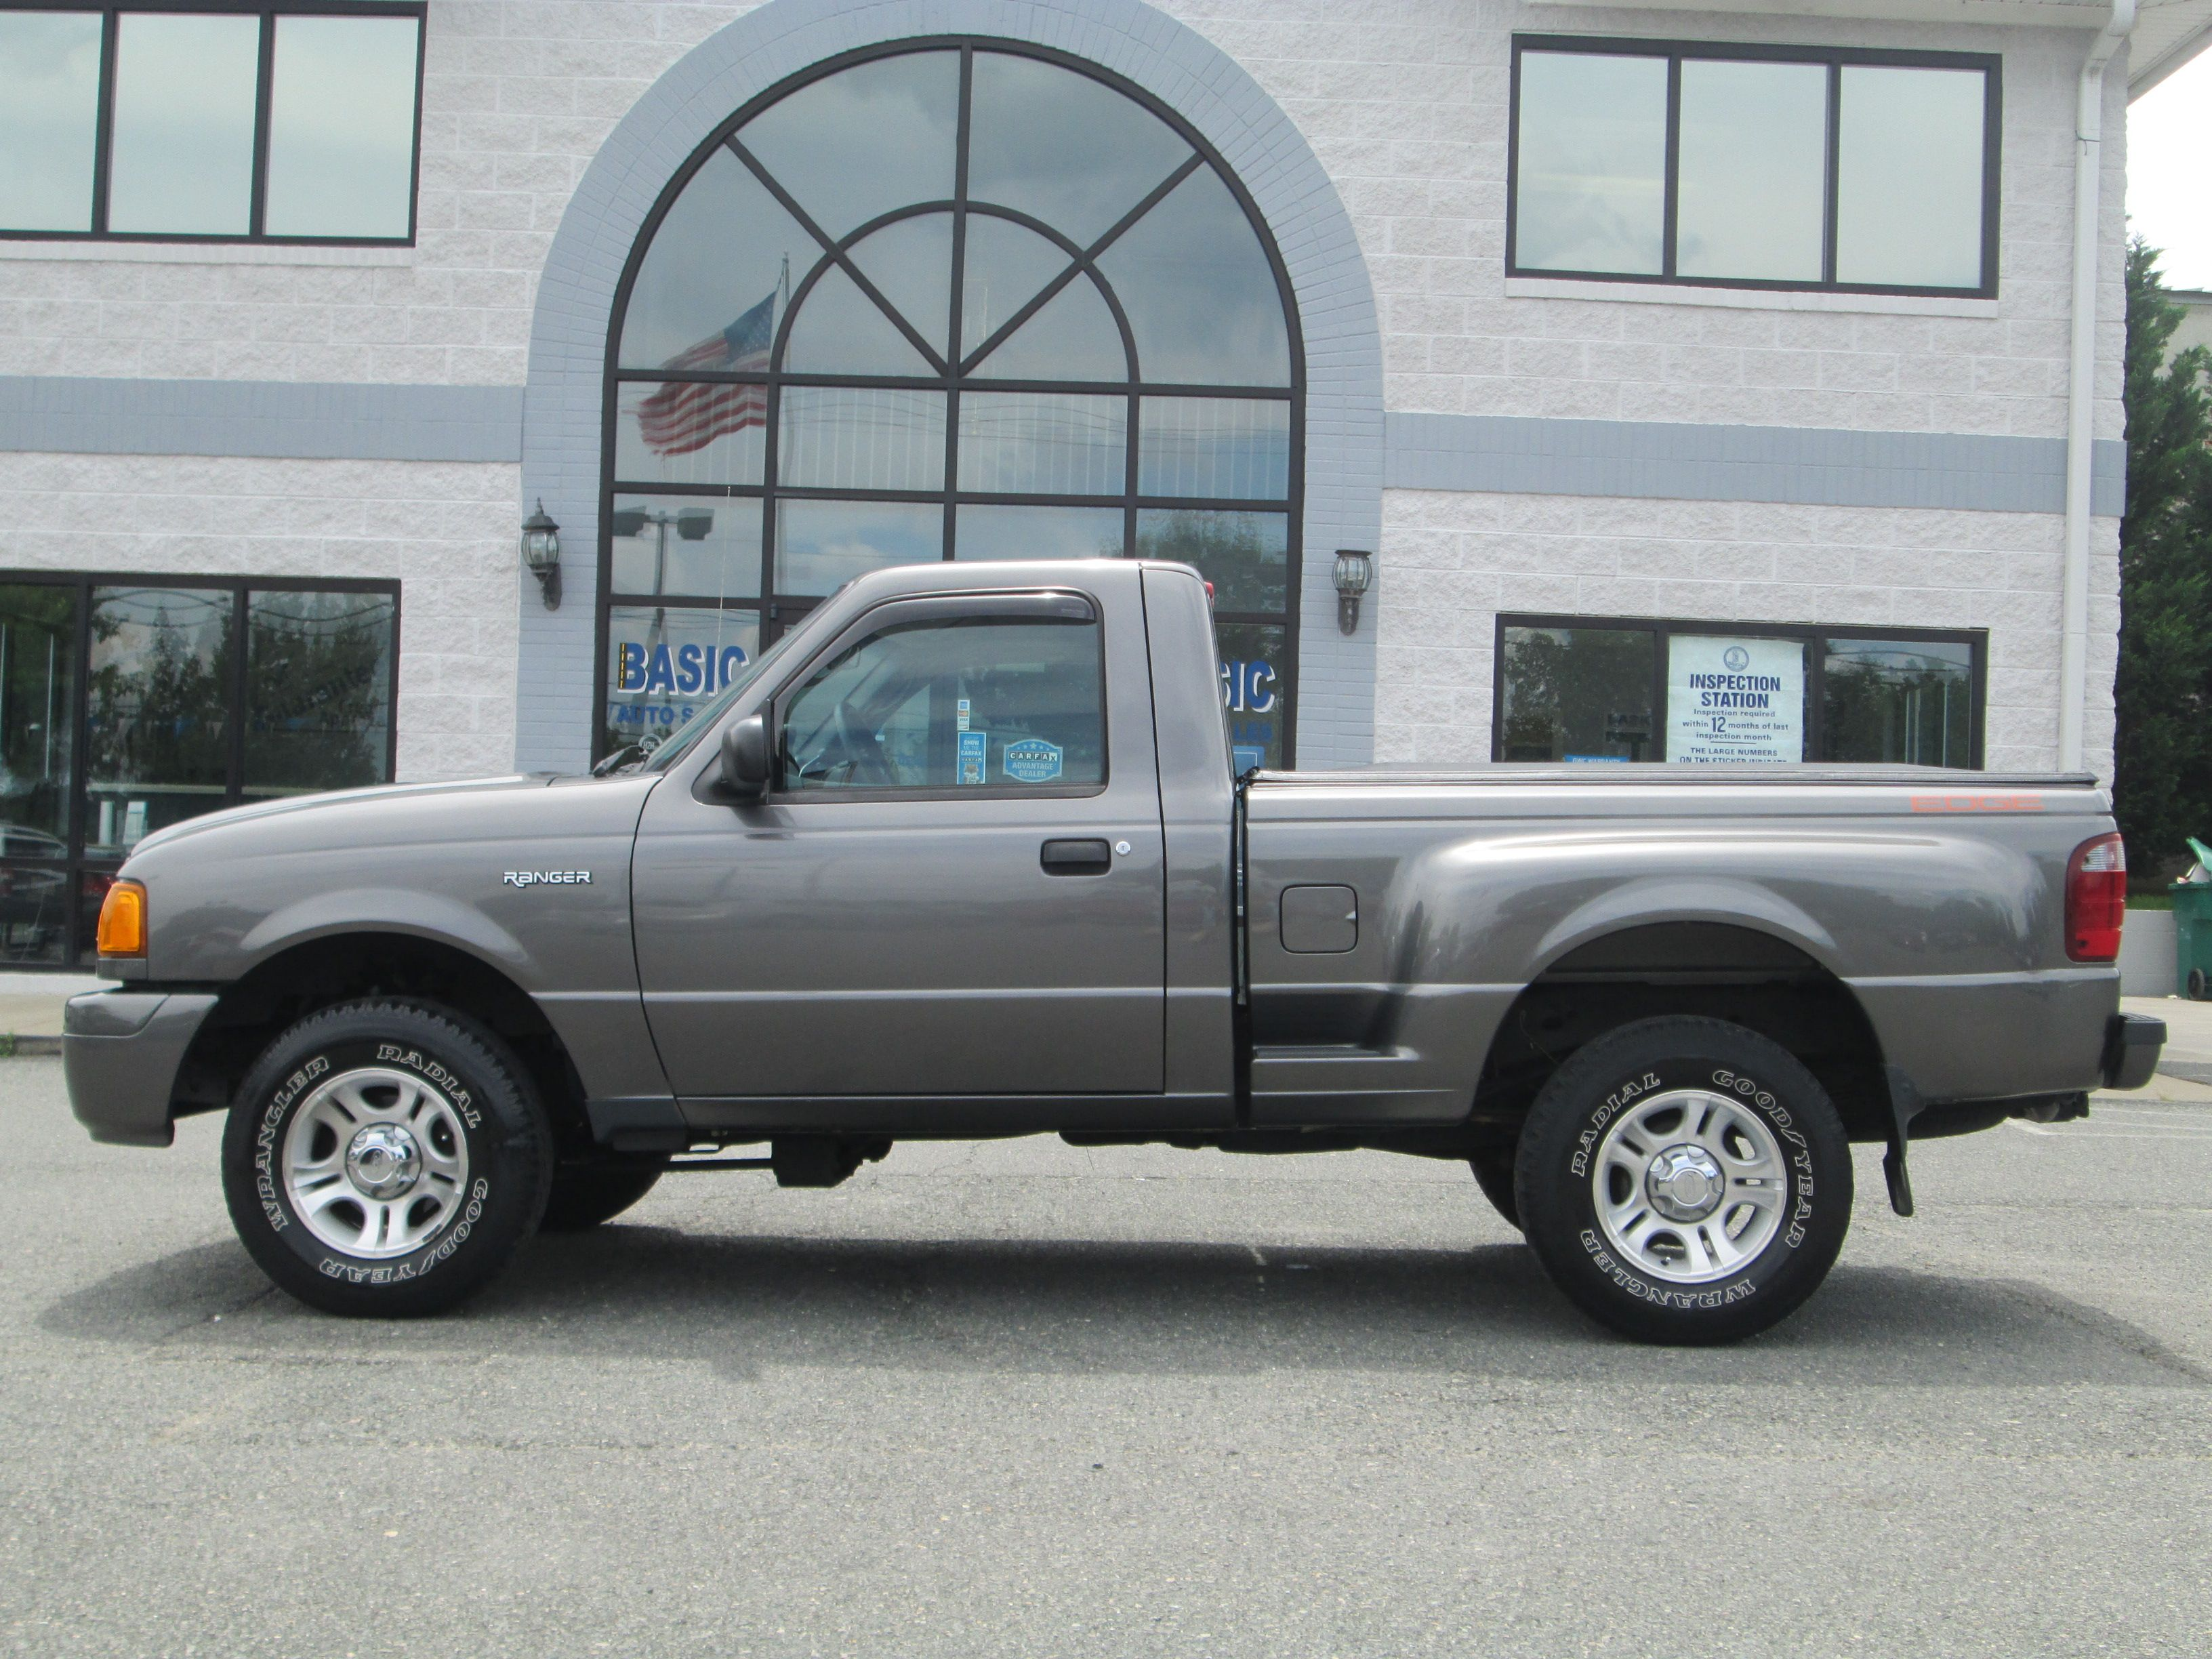 Used 2004 ford ranger edge 3 0l standard truck regular cab for sale at basic auto